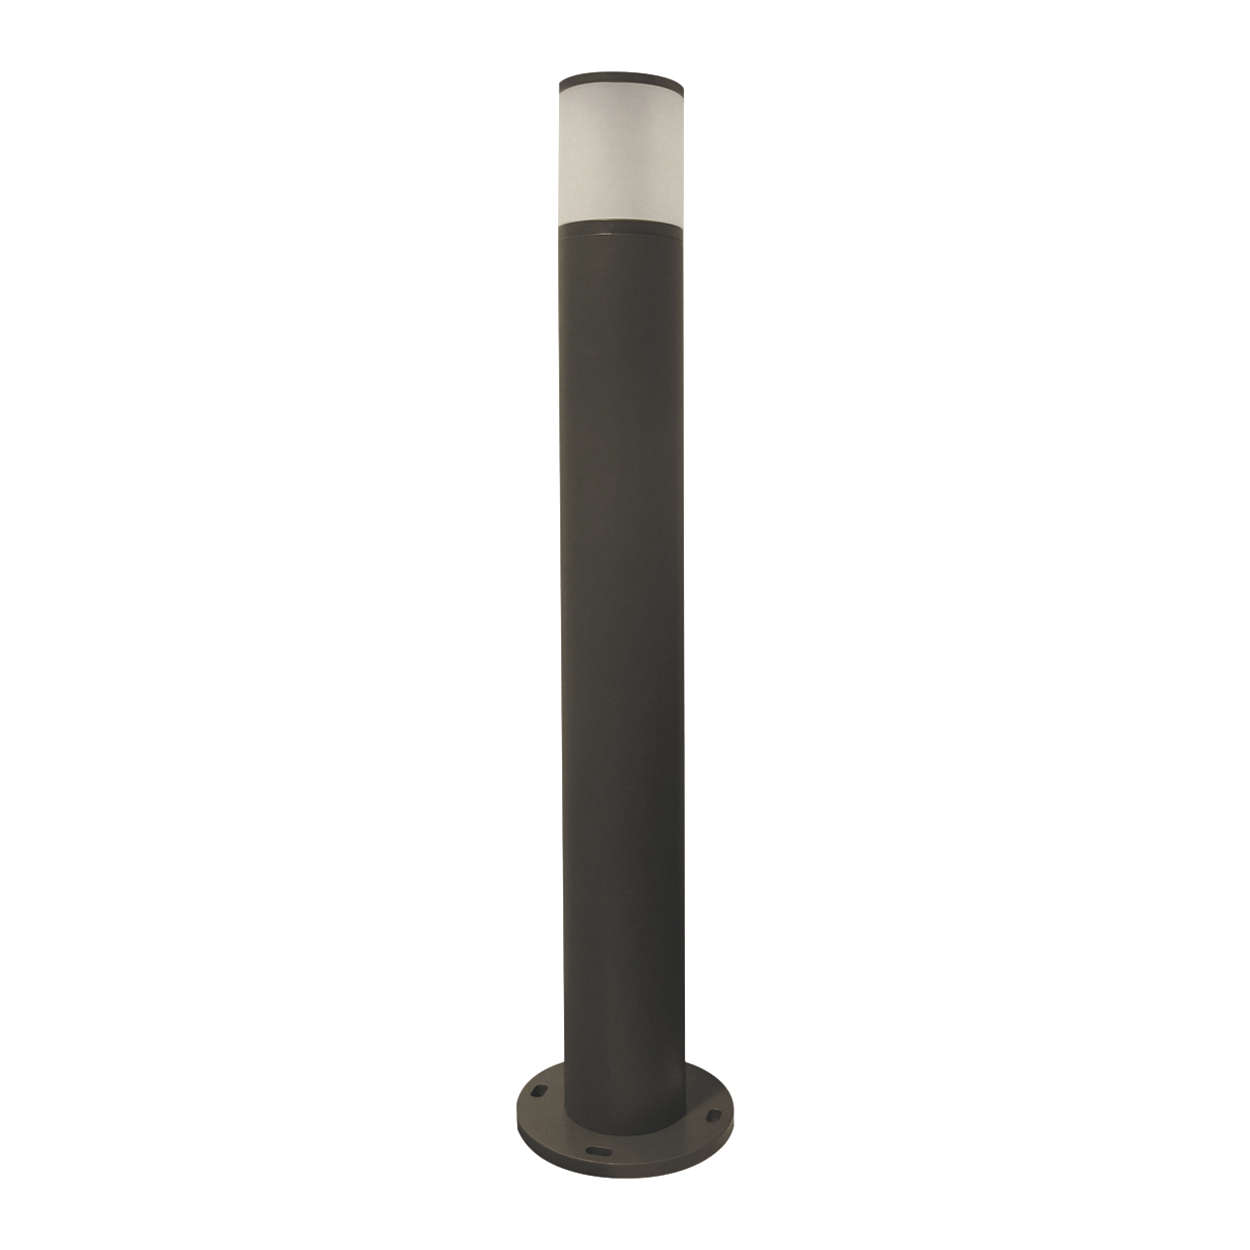 LED Bollard II BCP150/151 – reliable landscape lighting for harmonious city living